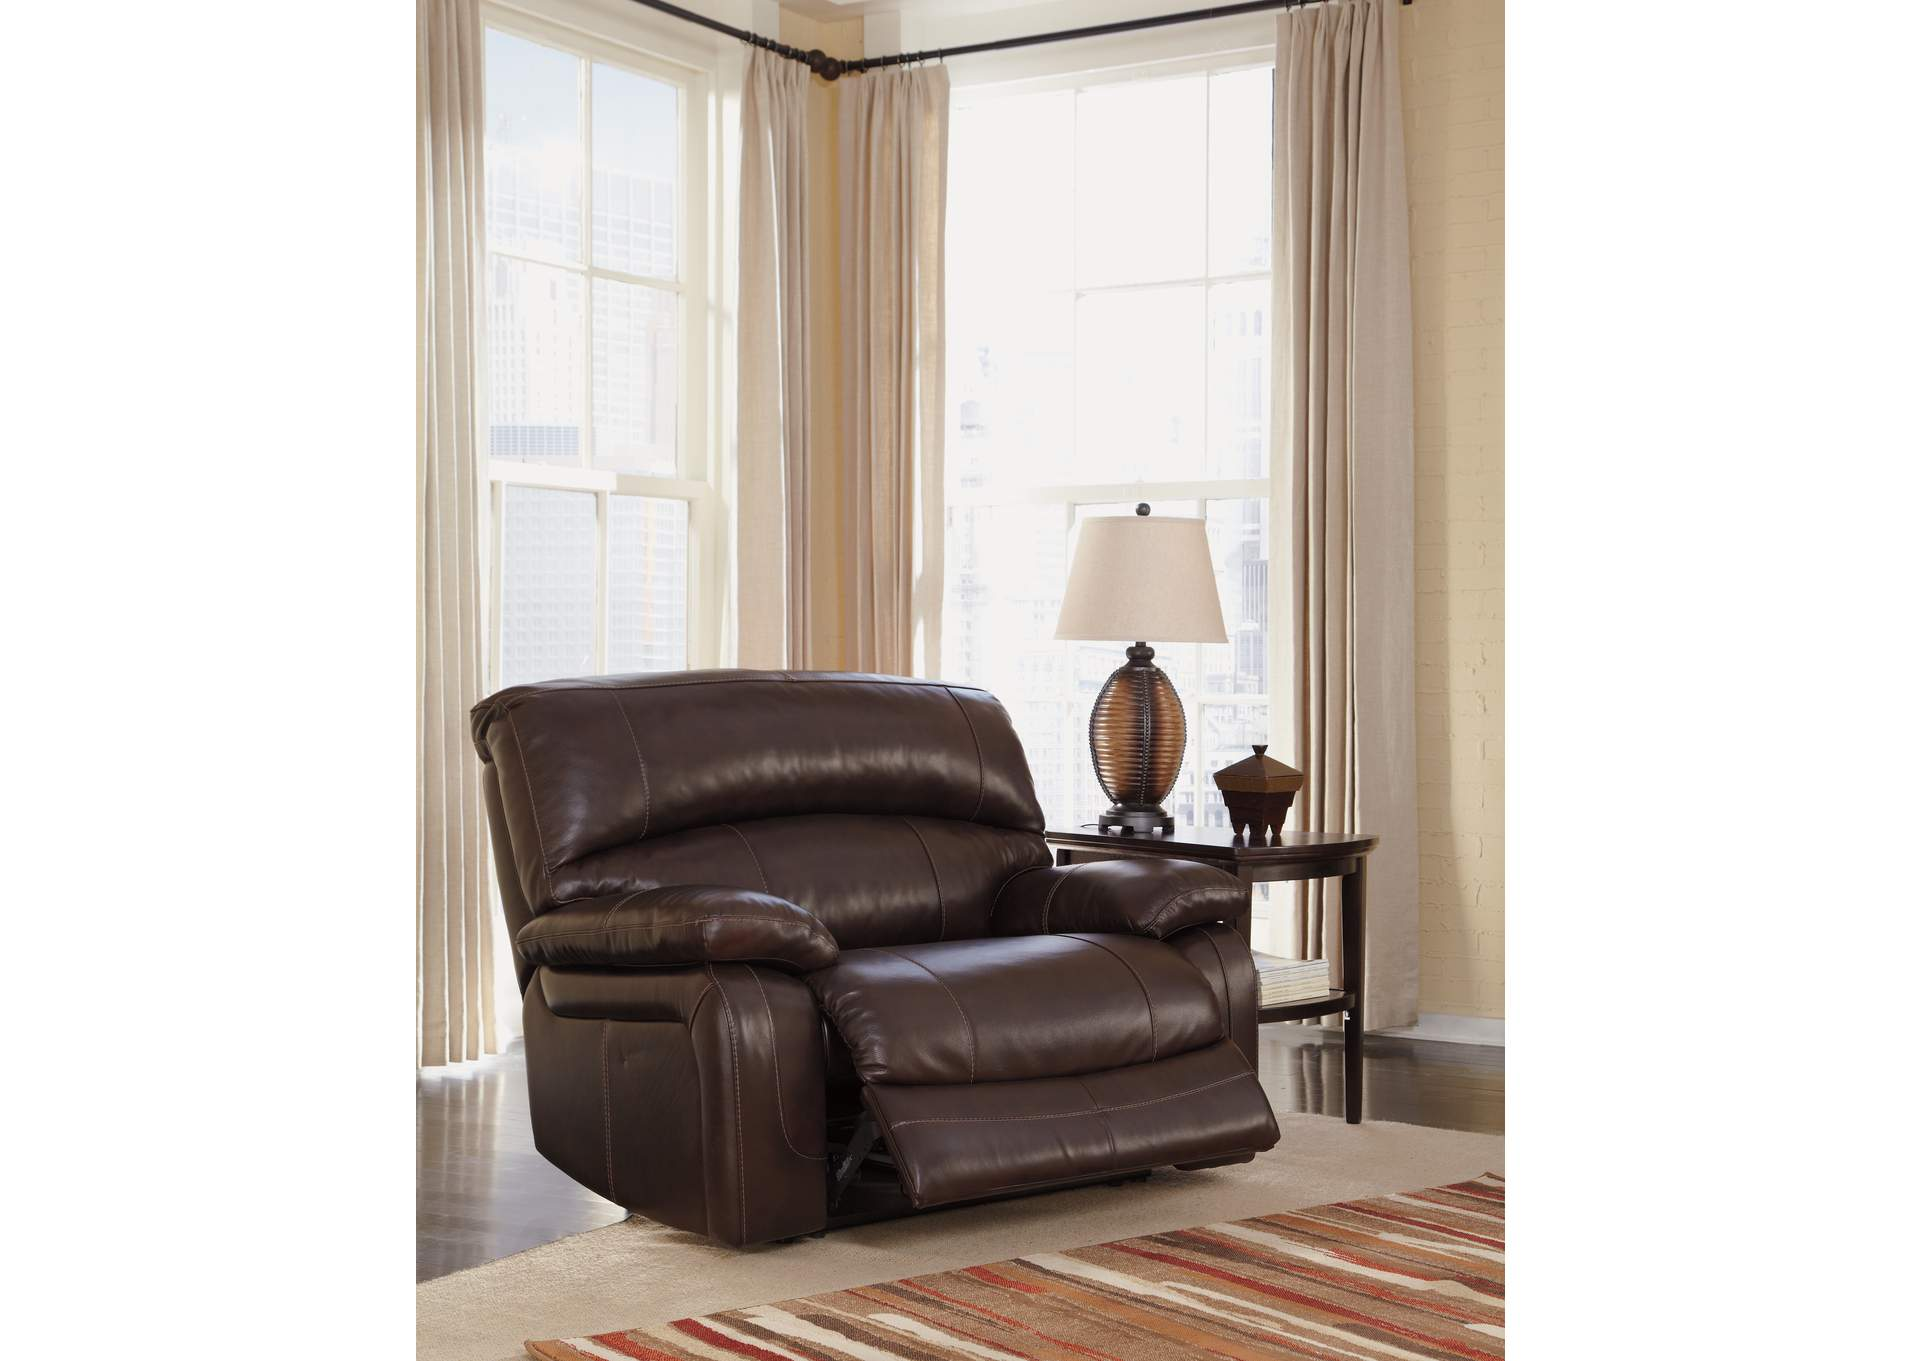 wide living room chair w a akins amp sons damacio dark brown zero wall power wide 22150 | U98200 82 OPEN